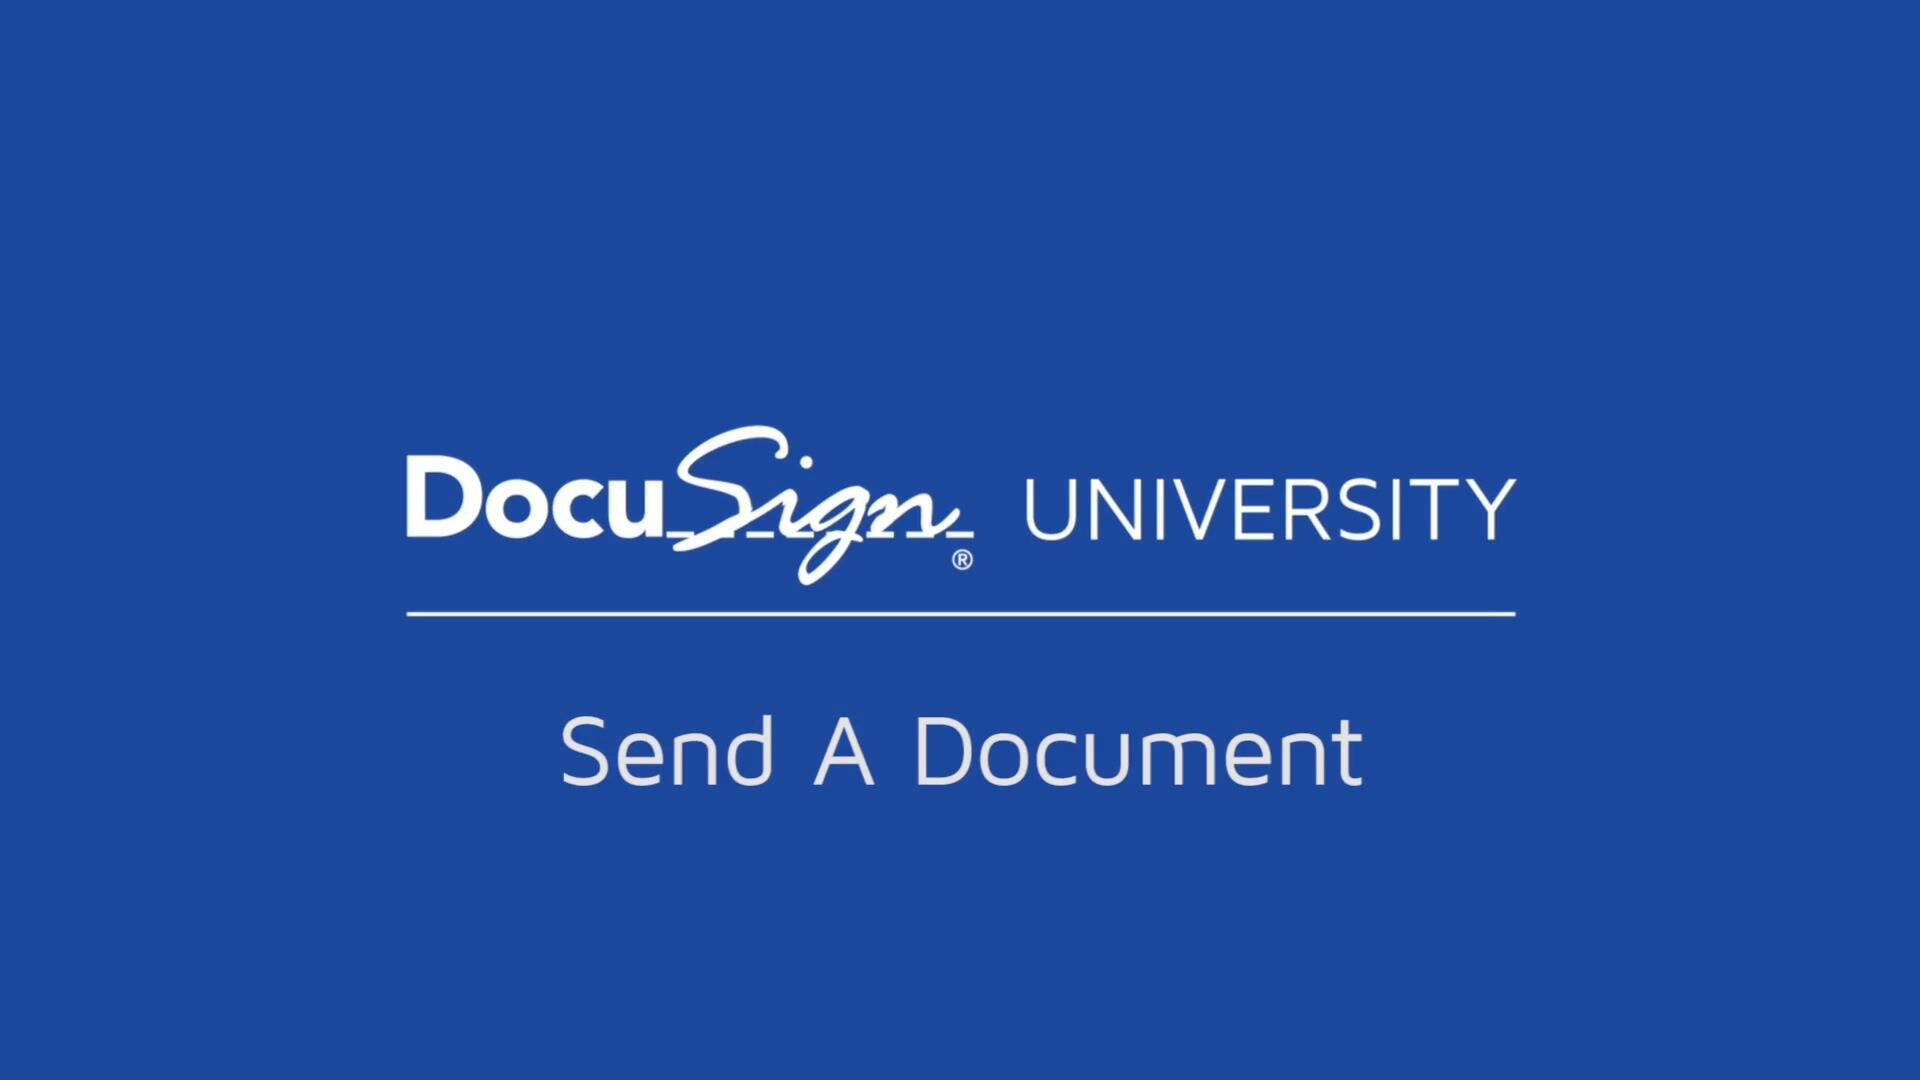 DocuSign Sending Documents Video